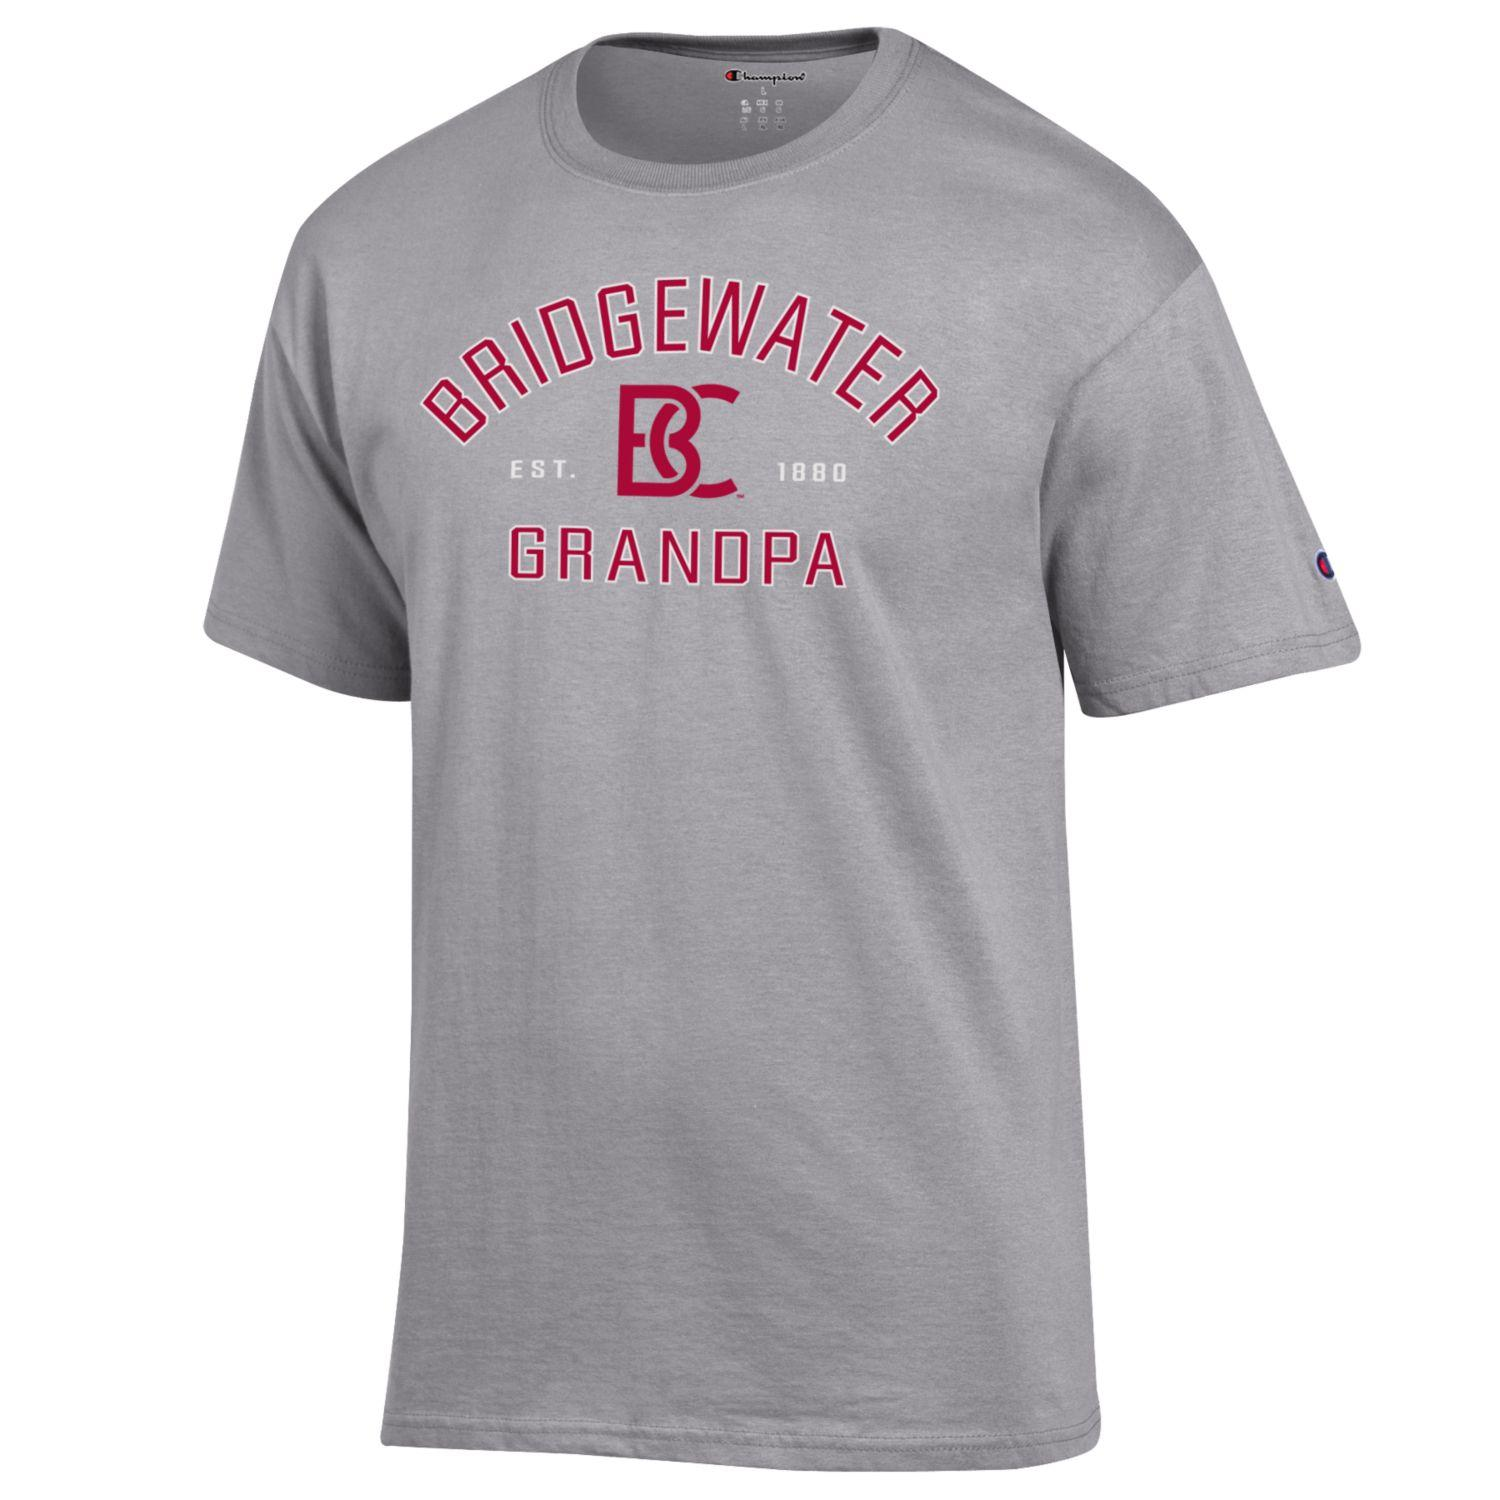 Champion Bridgewater College Short Sleeve Grandpa Tee